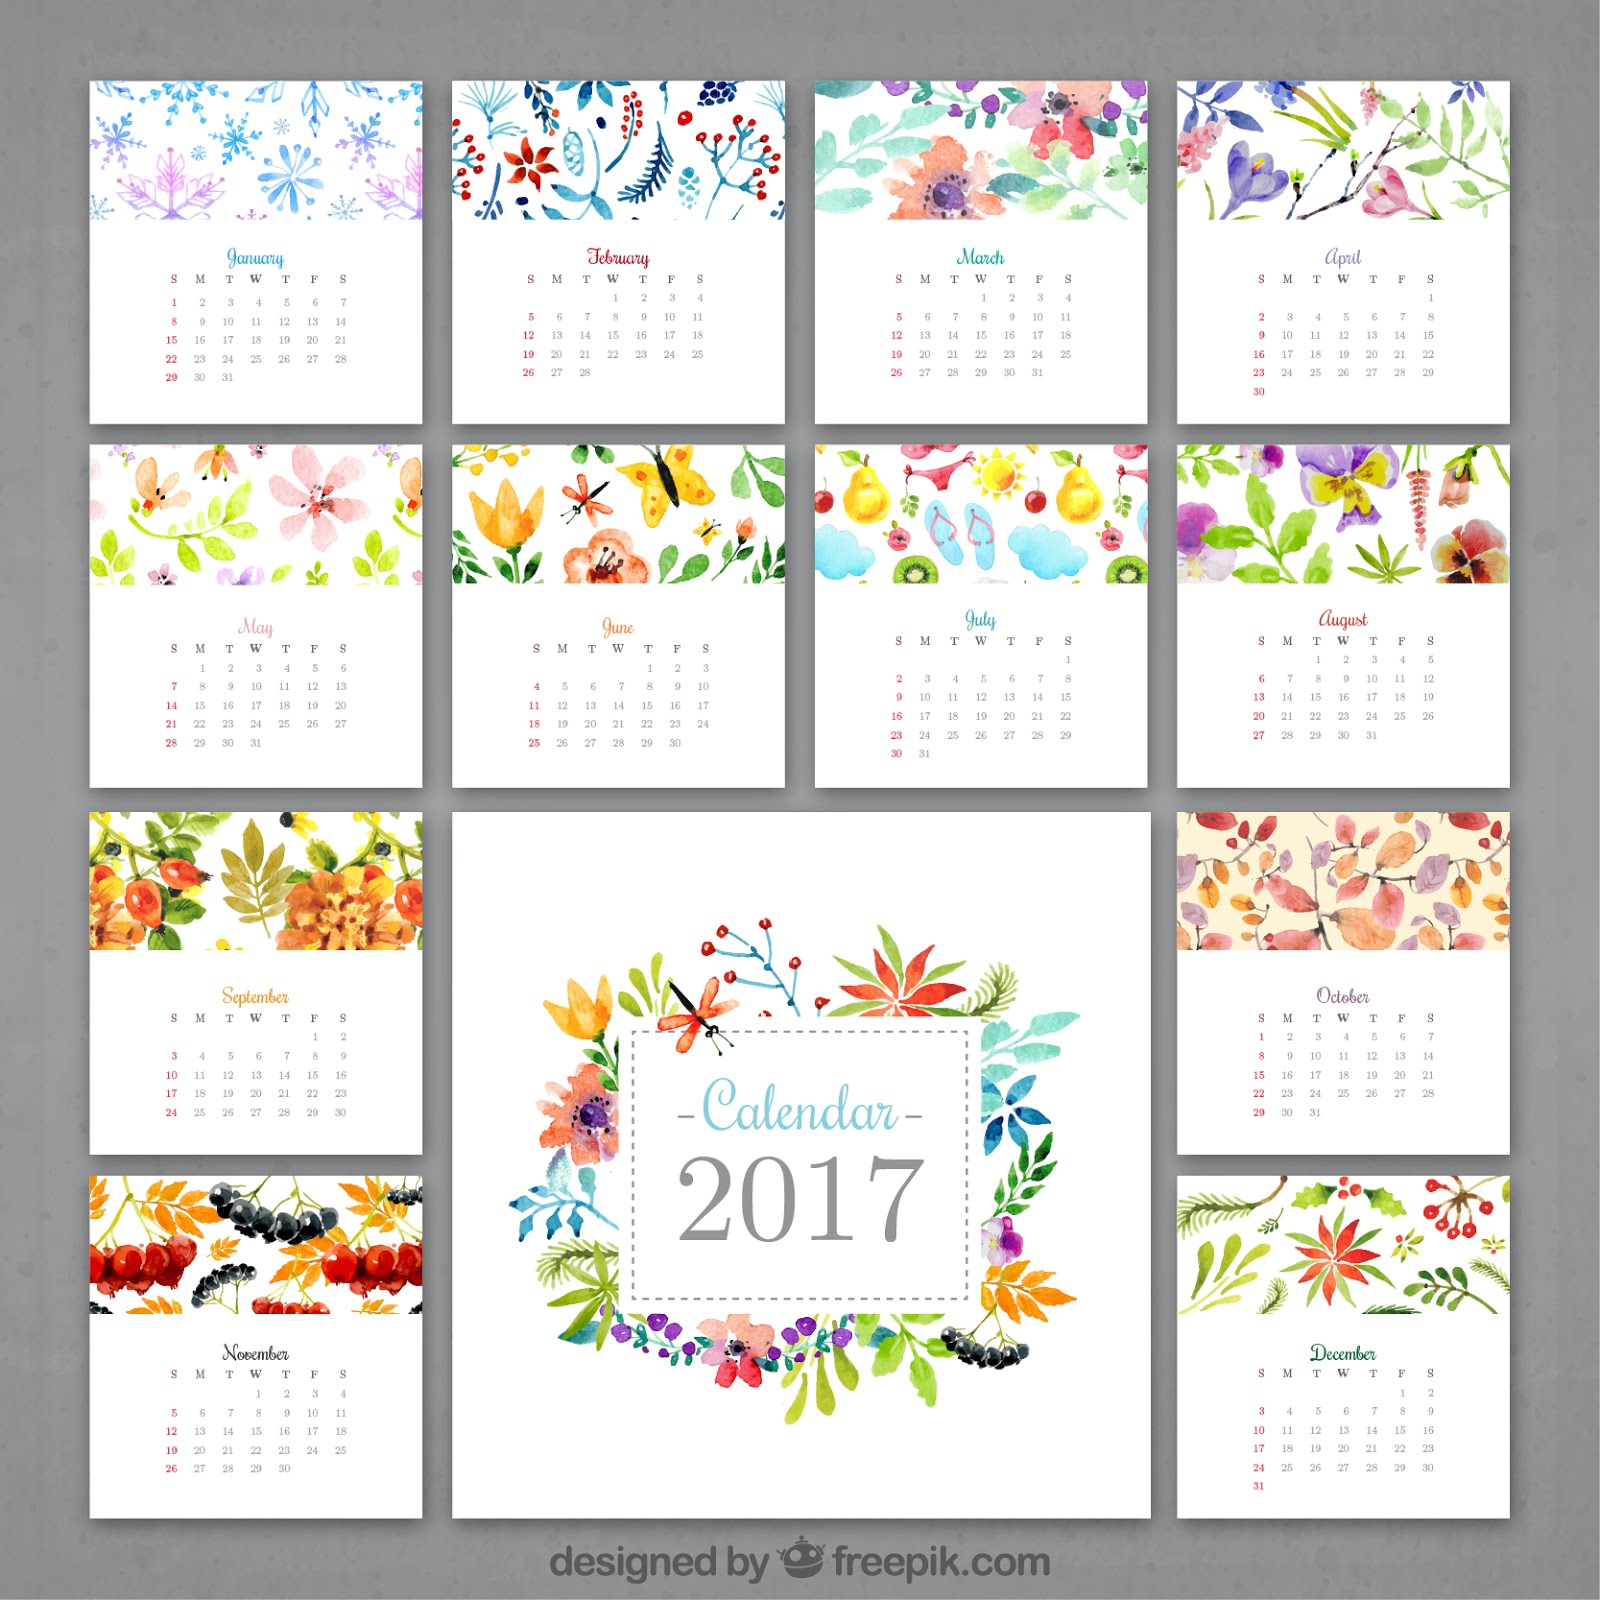 Calendar 2017 Vector Free Download New Template